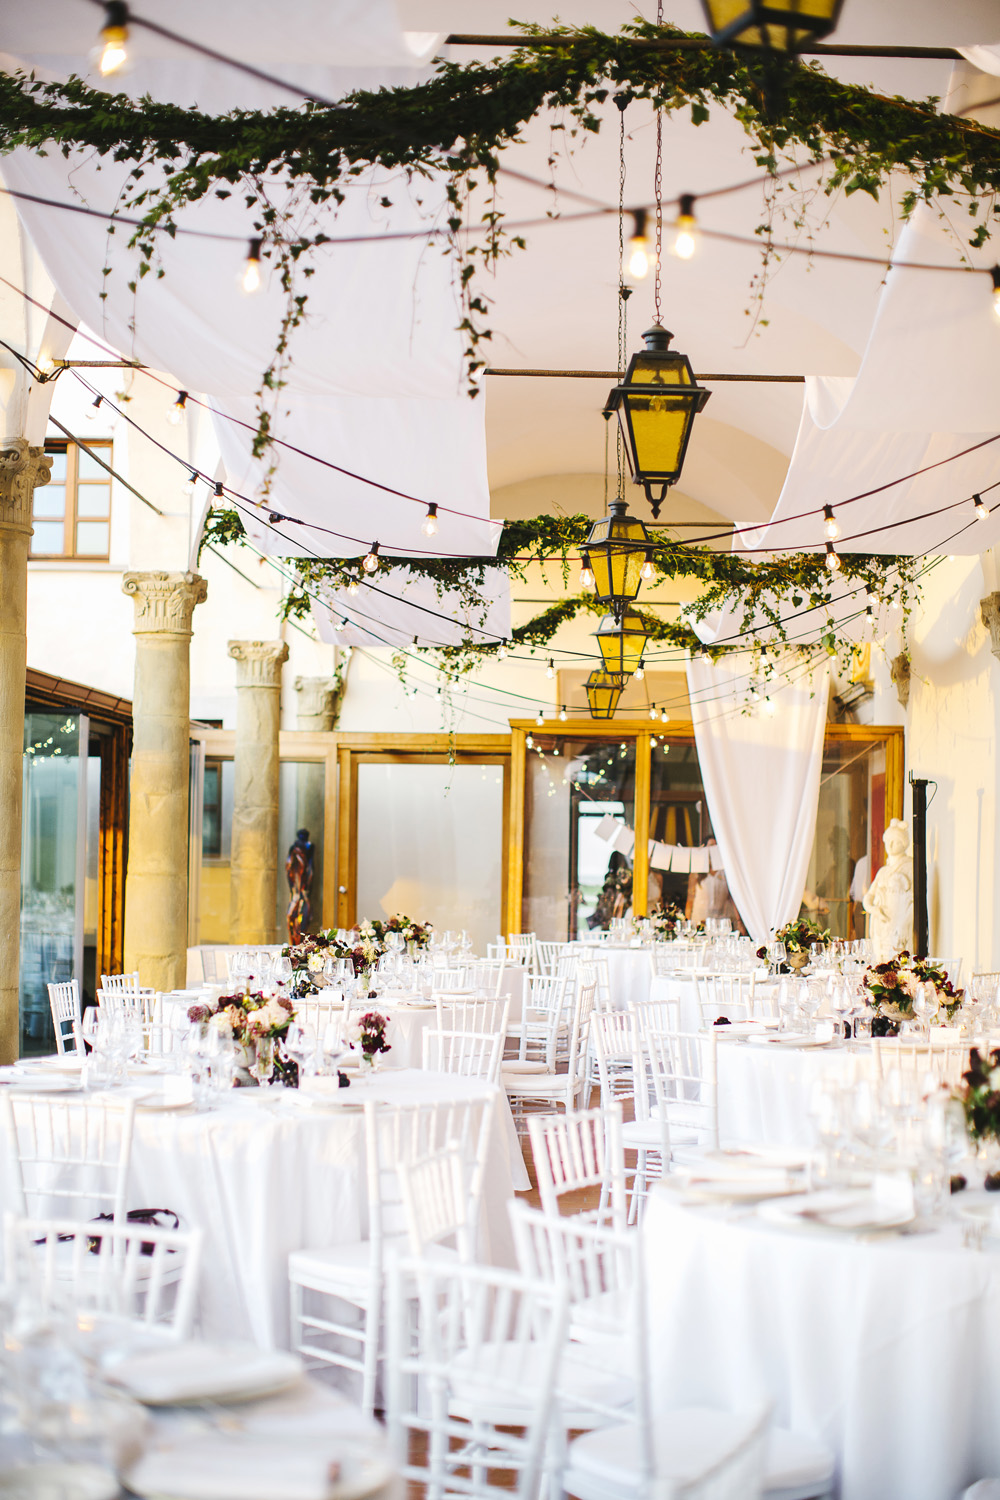 Villa Tolomei Wedding Venue